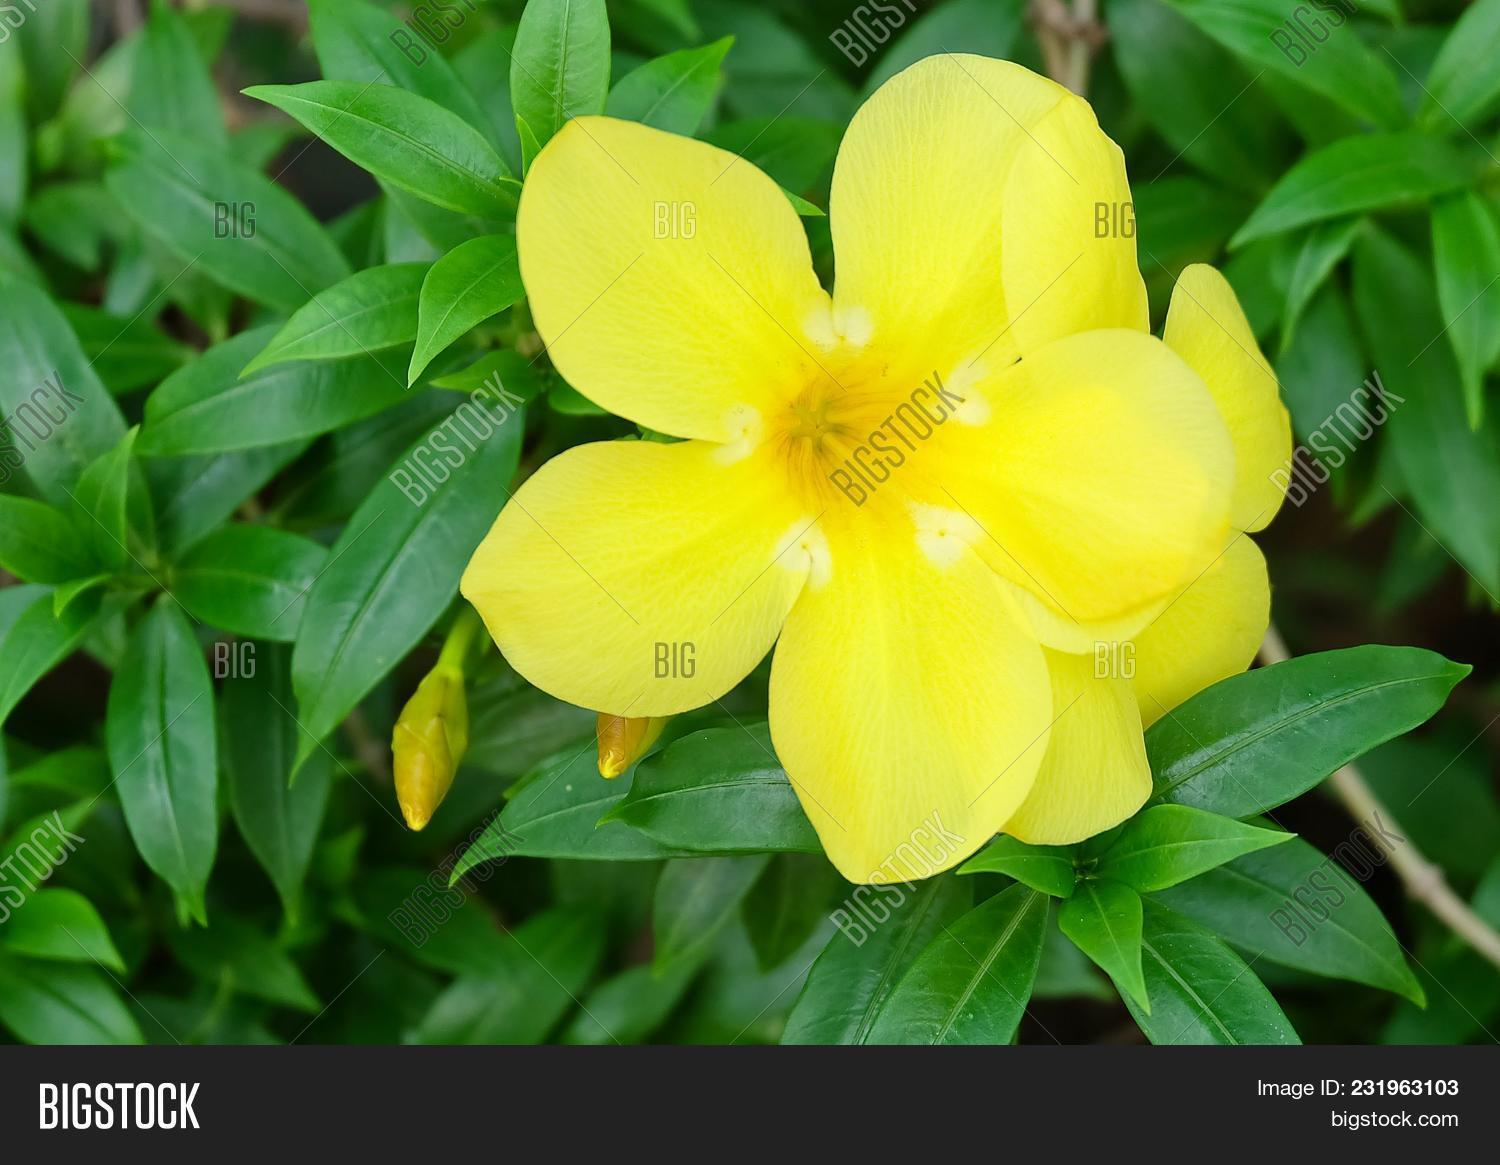 Beautiful Flower Image Photo Free Trial Bigstock